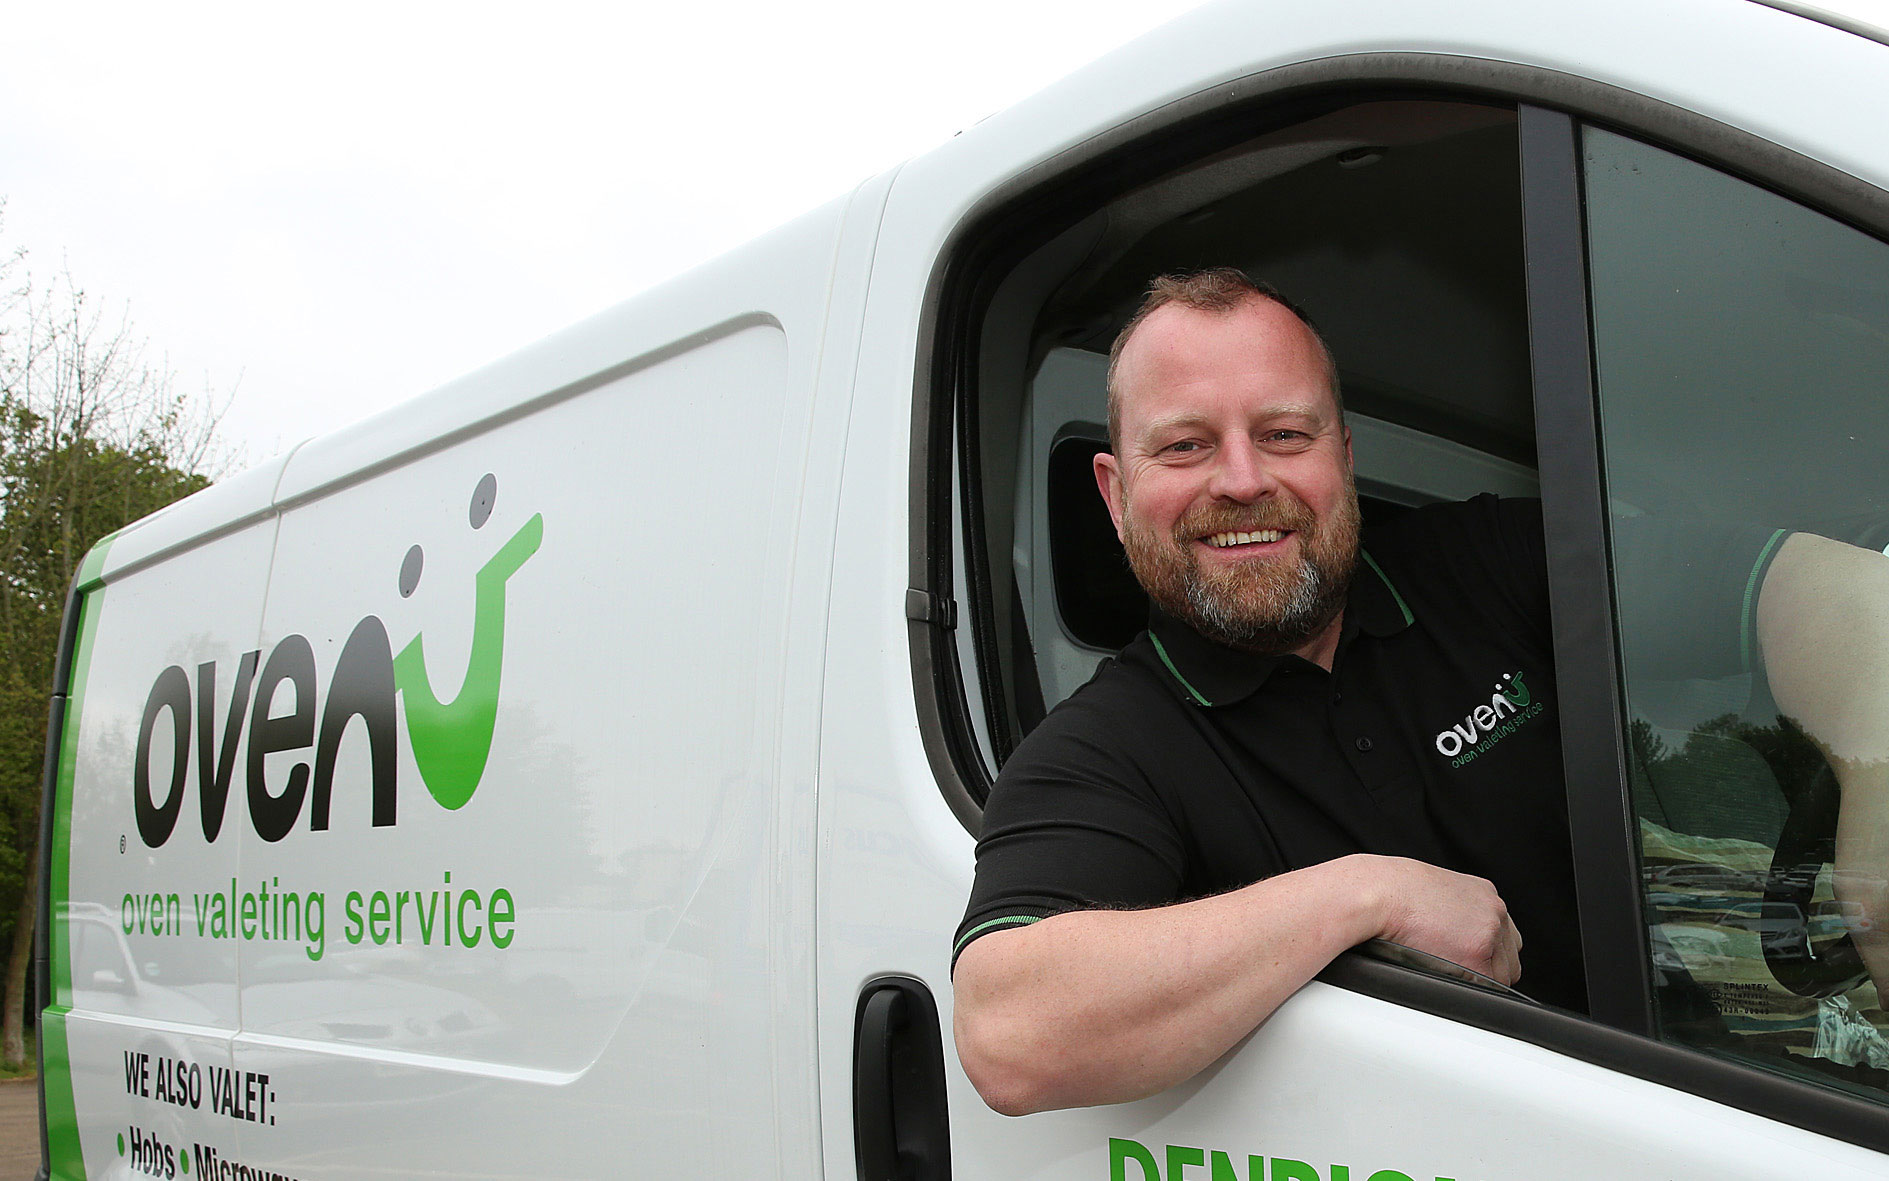 Phil Davidson in his Ovenu van